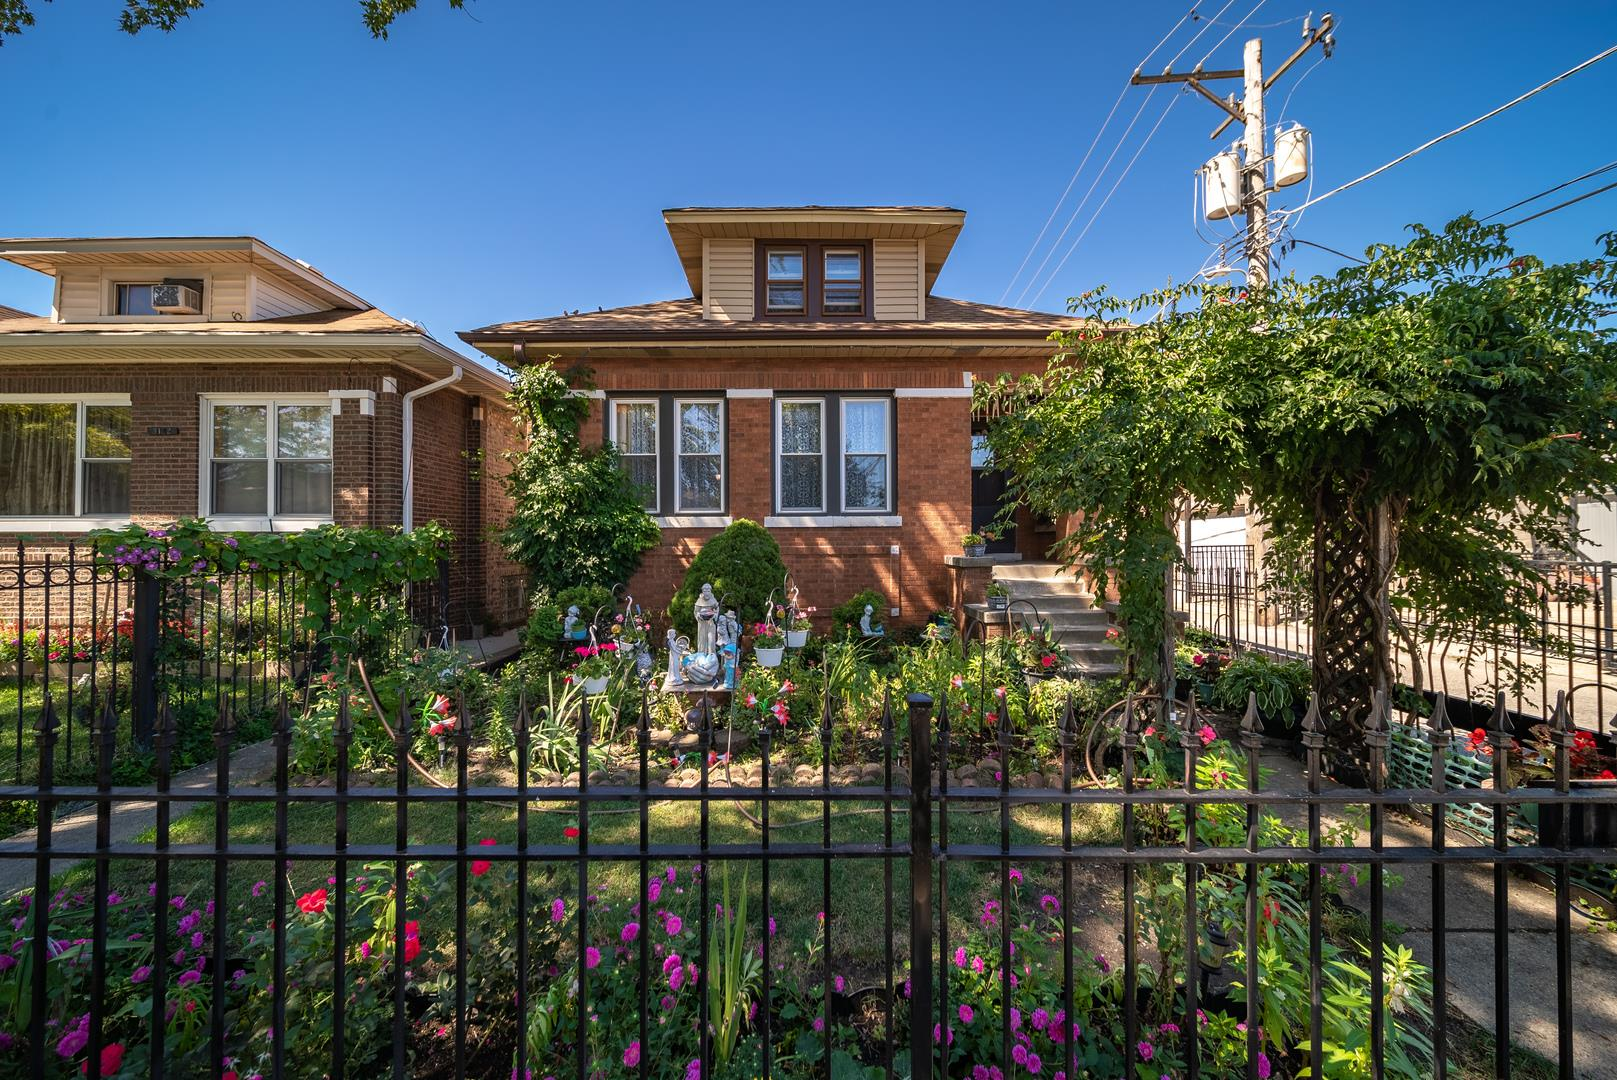 3146 N KILBOURN Avenue, Chicago, IL 60641 - #: 10938275